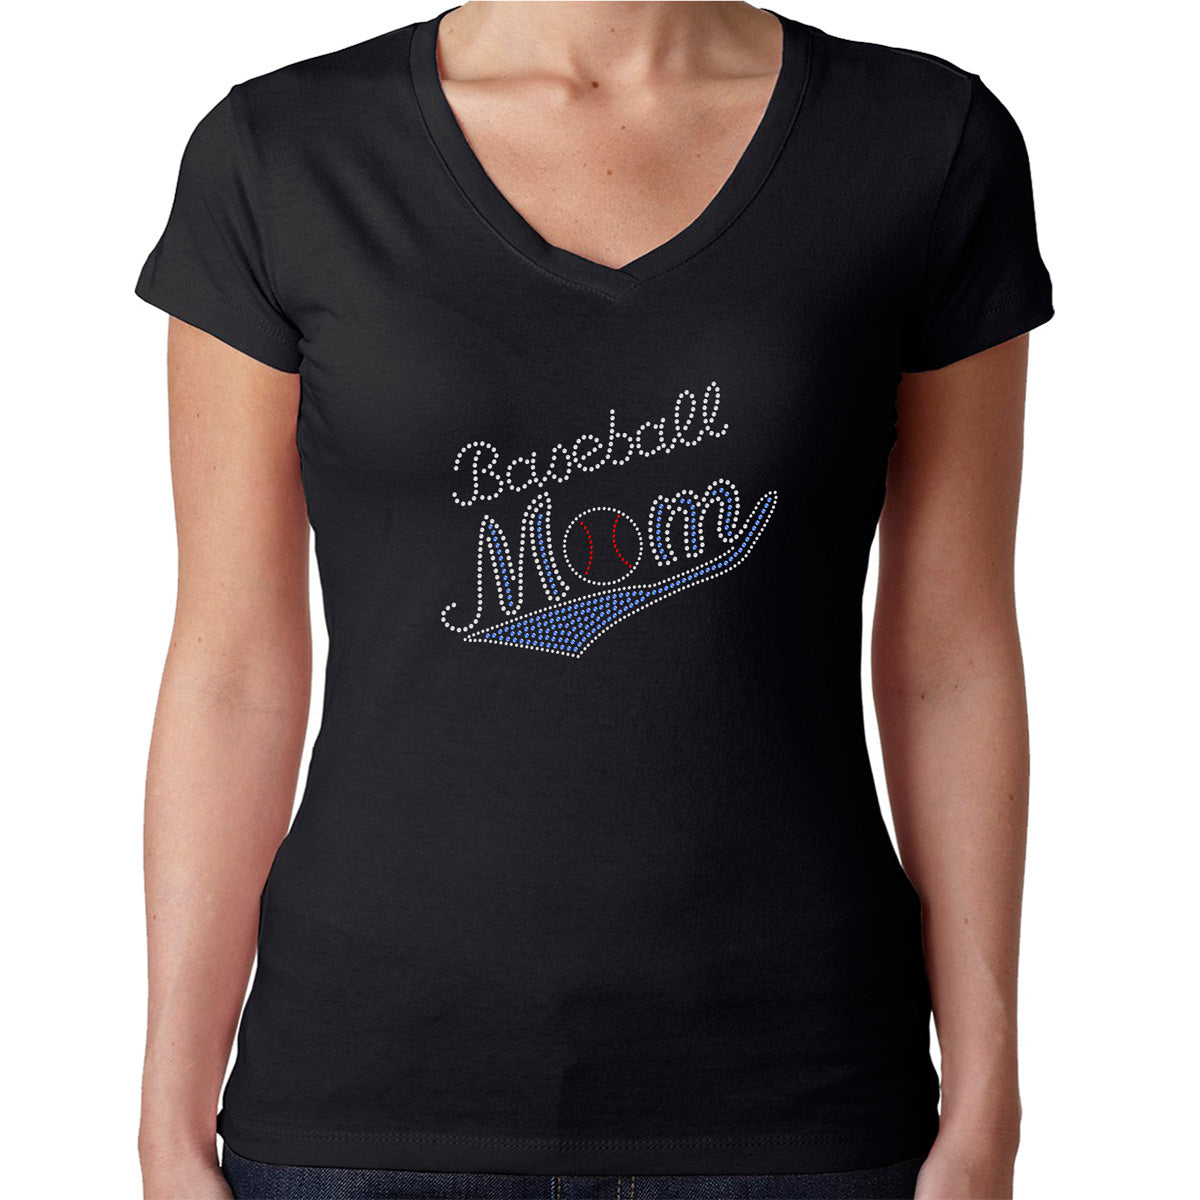 Womens T-Shirt Rhinestone Bling Black Fitted Tee Baseball Mom Ball Blue